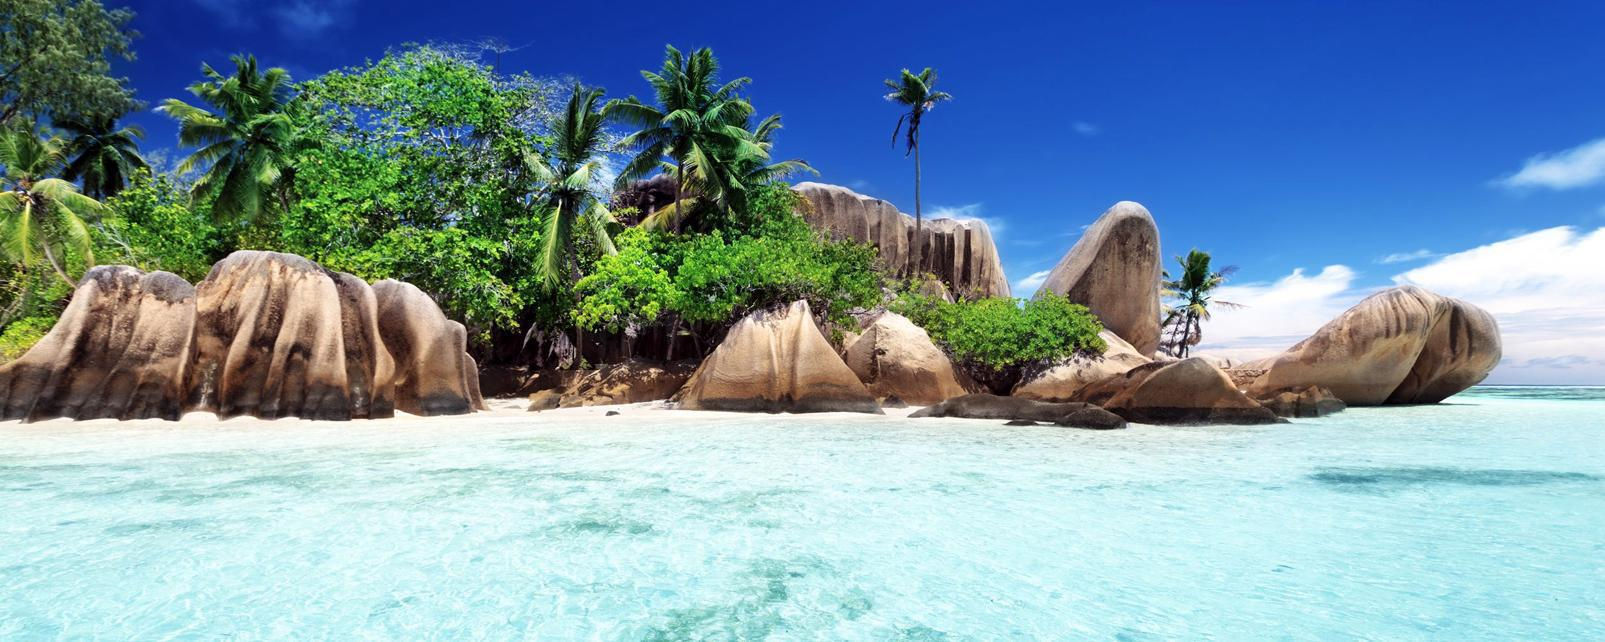 La Digue, Sailing Holidays, Beach, Seychelles